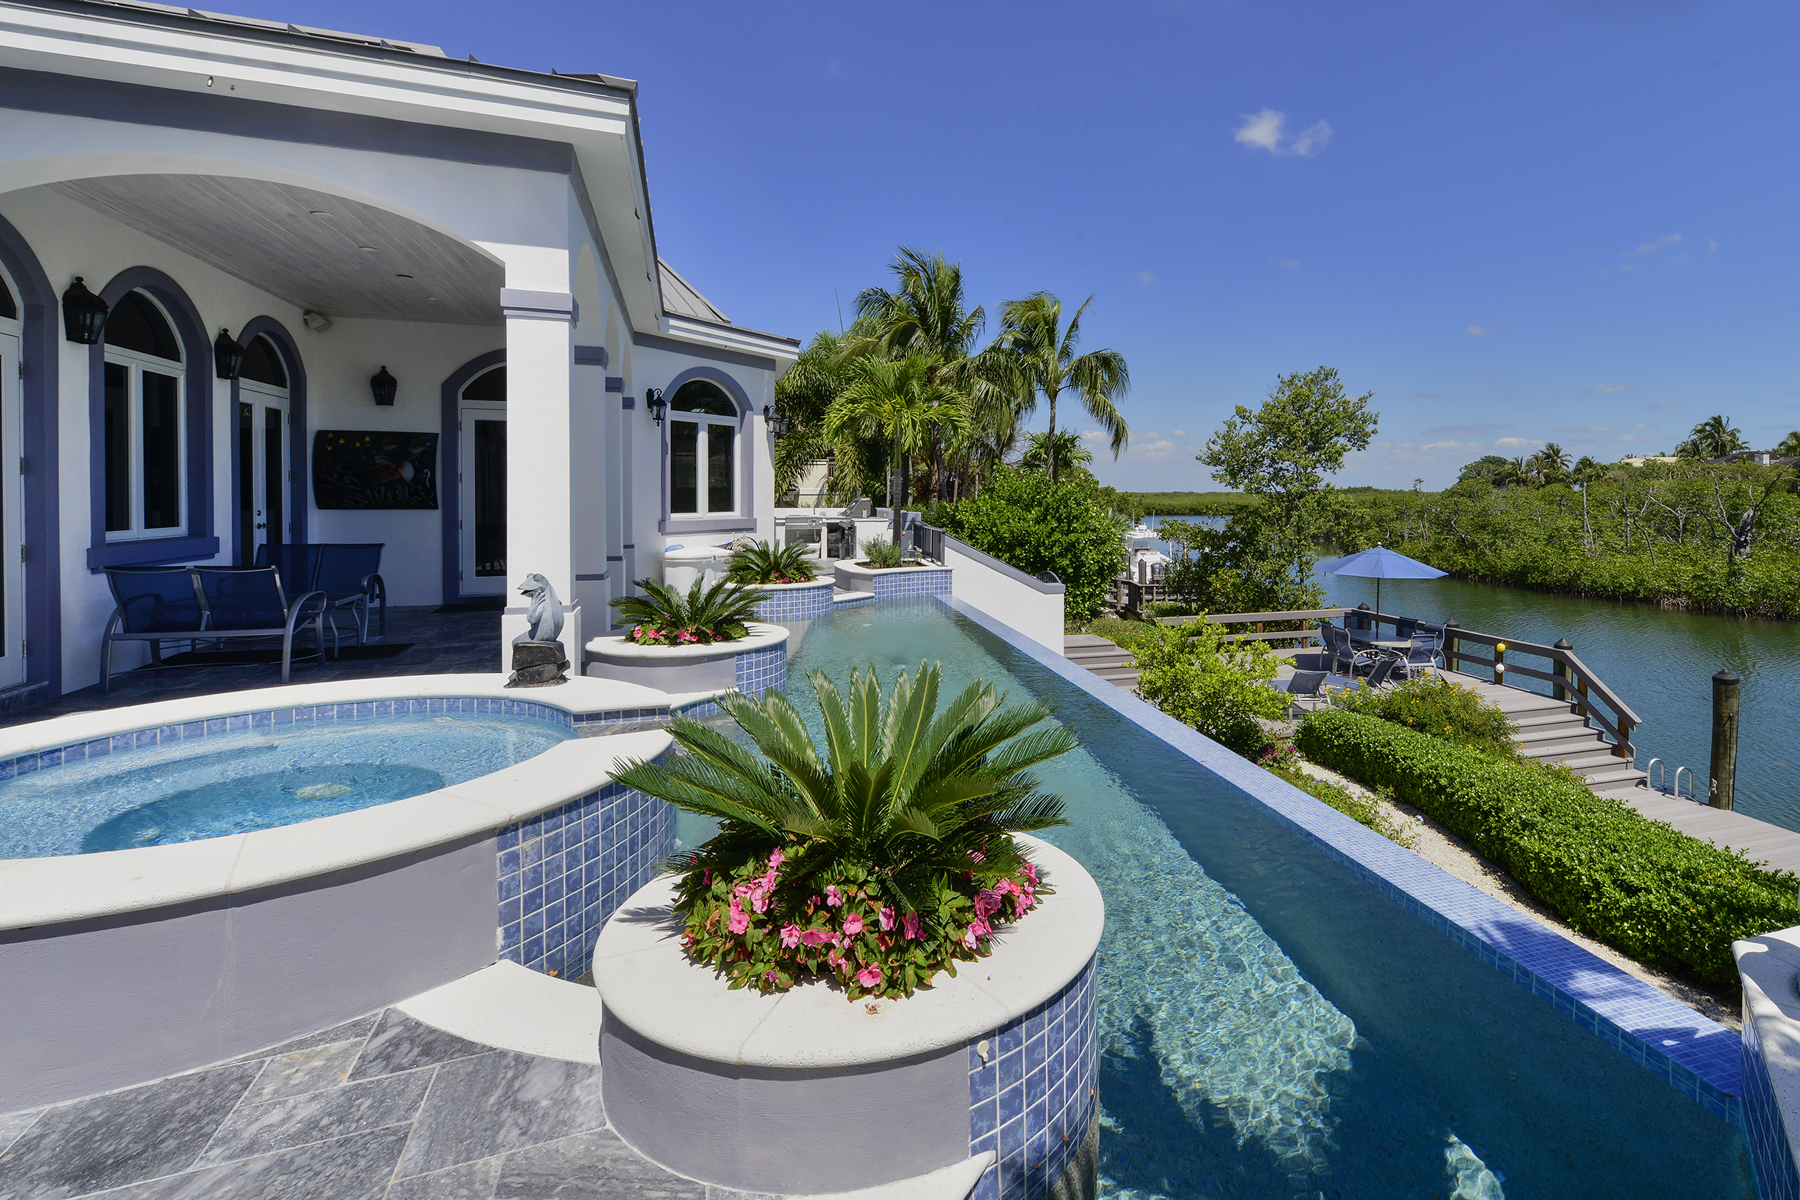 Single Family Home for Sale at Custom Built Waterfront Home at Ocean Reef 17 North Pelican Drive Ocean Reef Community, Key Largo, Florida, 33037 United States